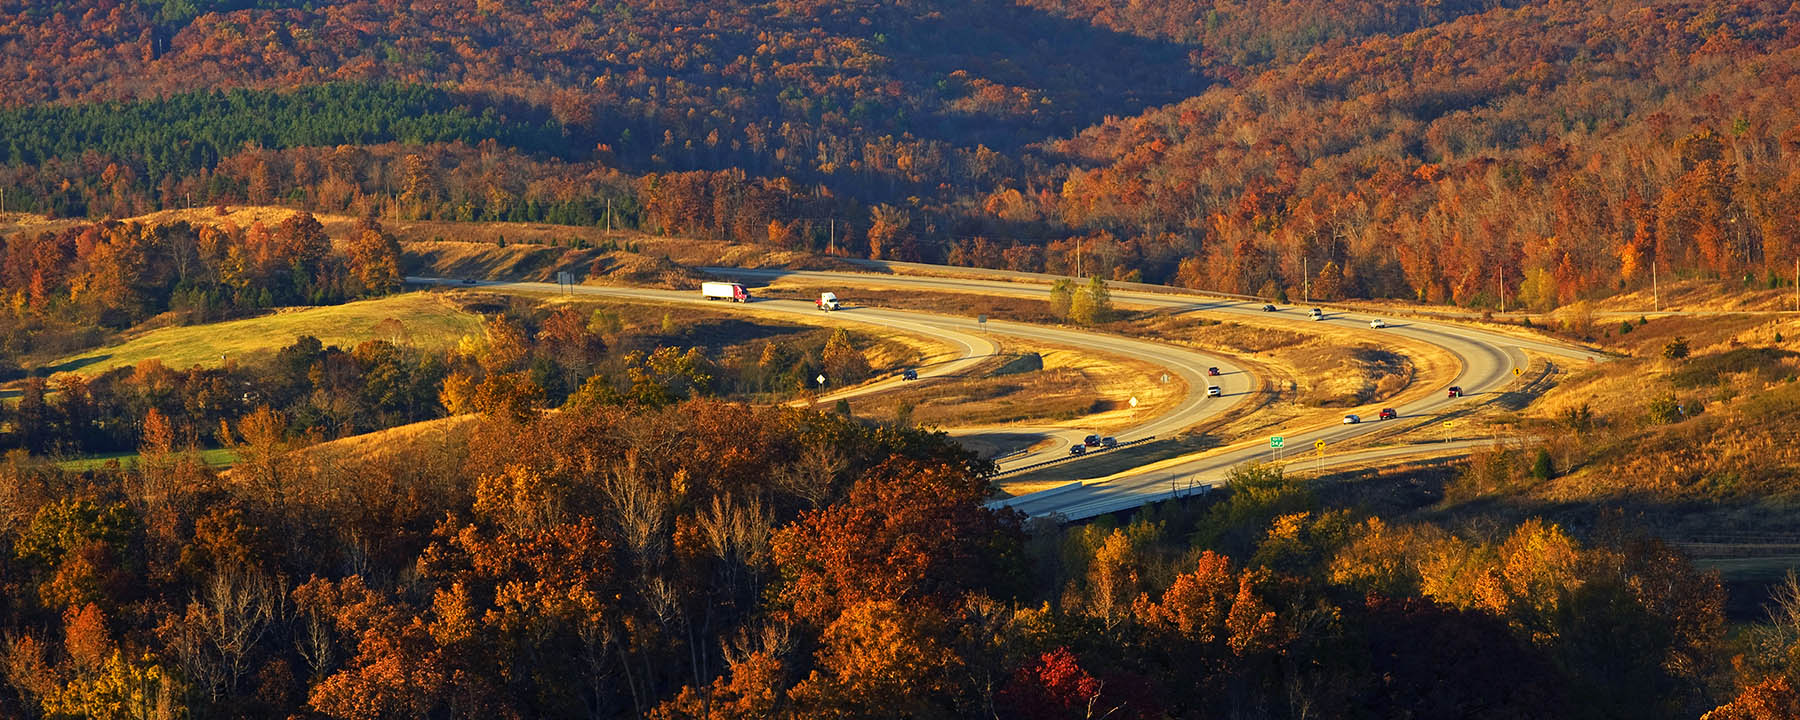 Arkansas-Good-Roads-Foundation-Slider-Image-5